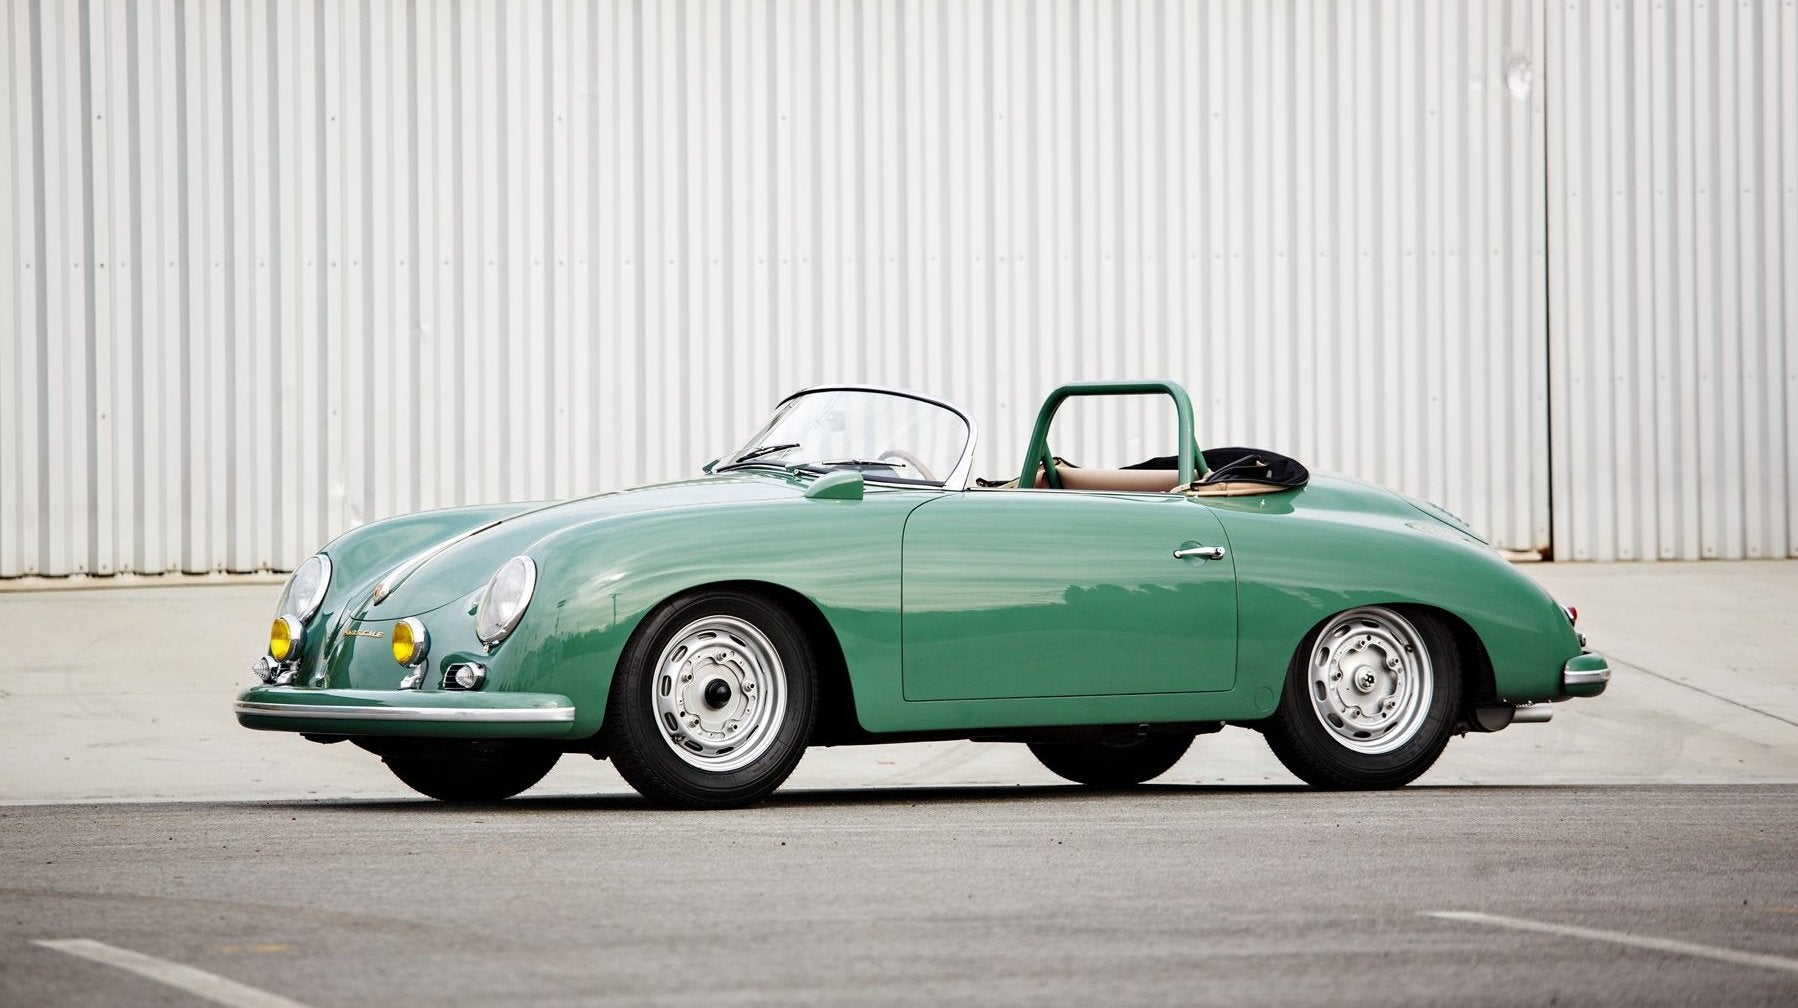 Jerry Seinfeld Sues Company He Bought Alleged Fake $2 Million Classic Porsche From